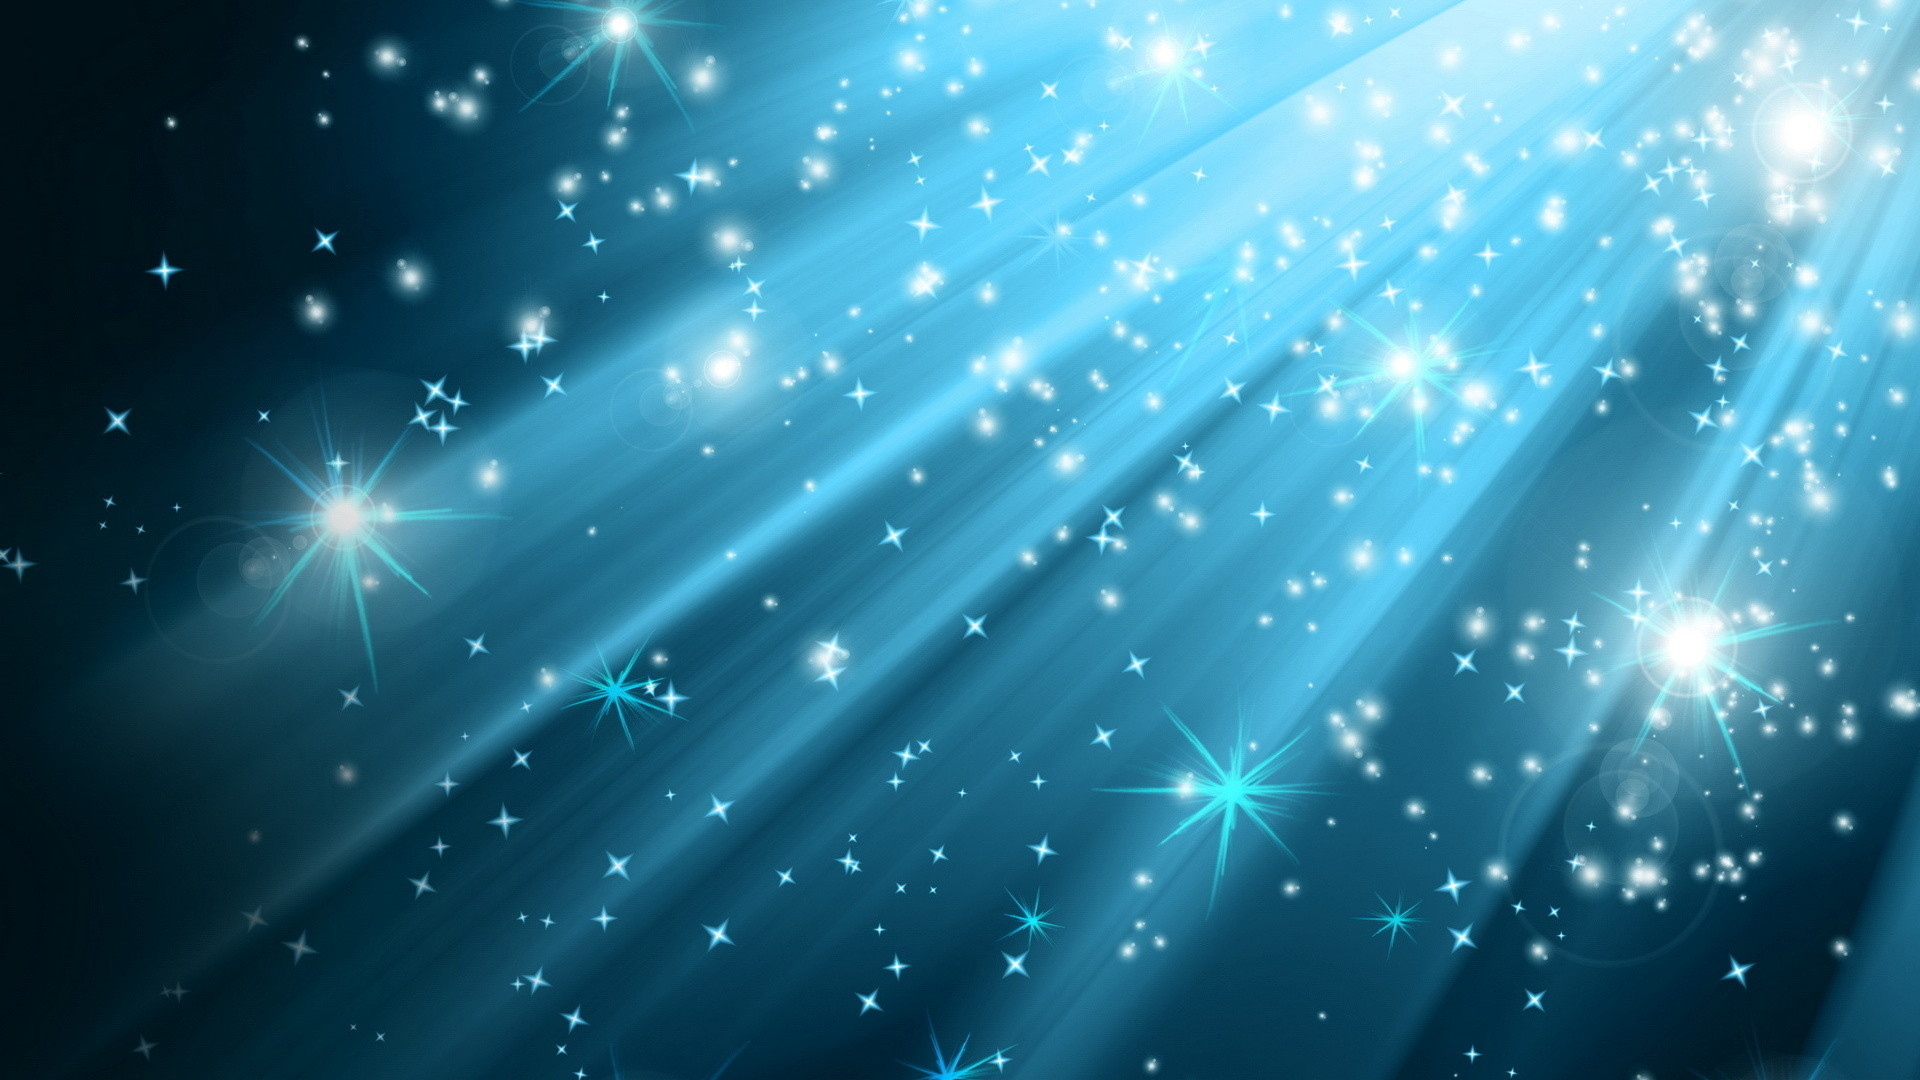 Light Blue Glitter Background wallpaper – 981080